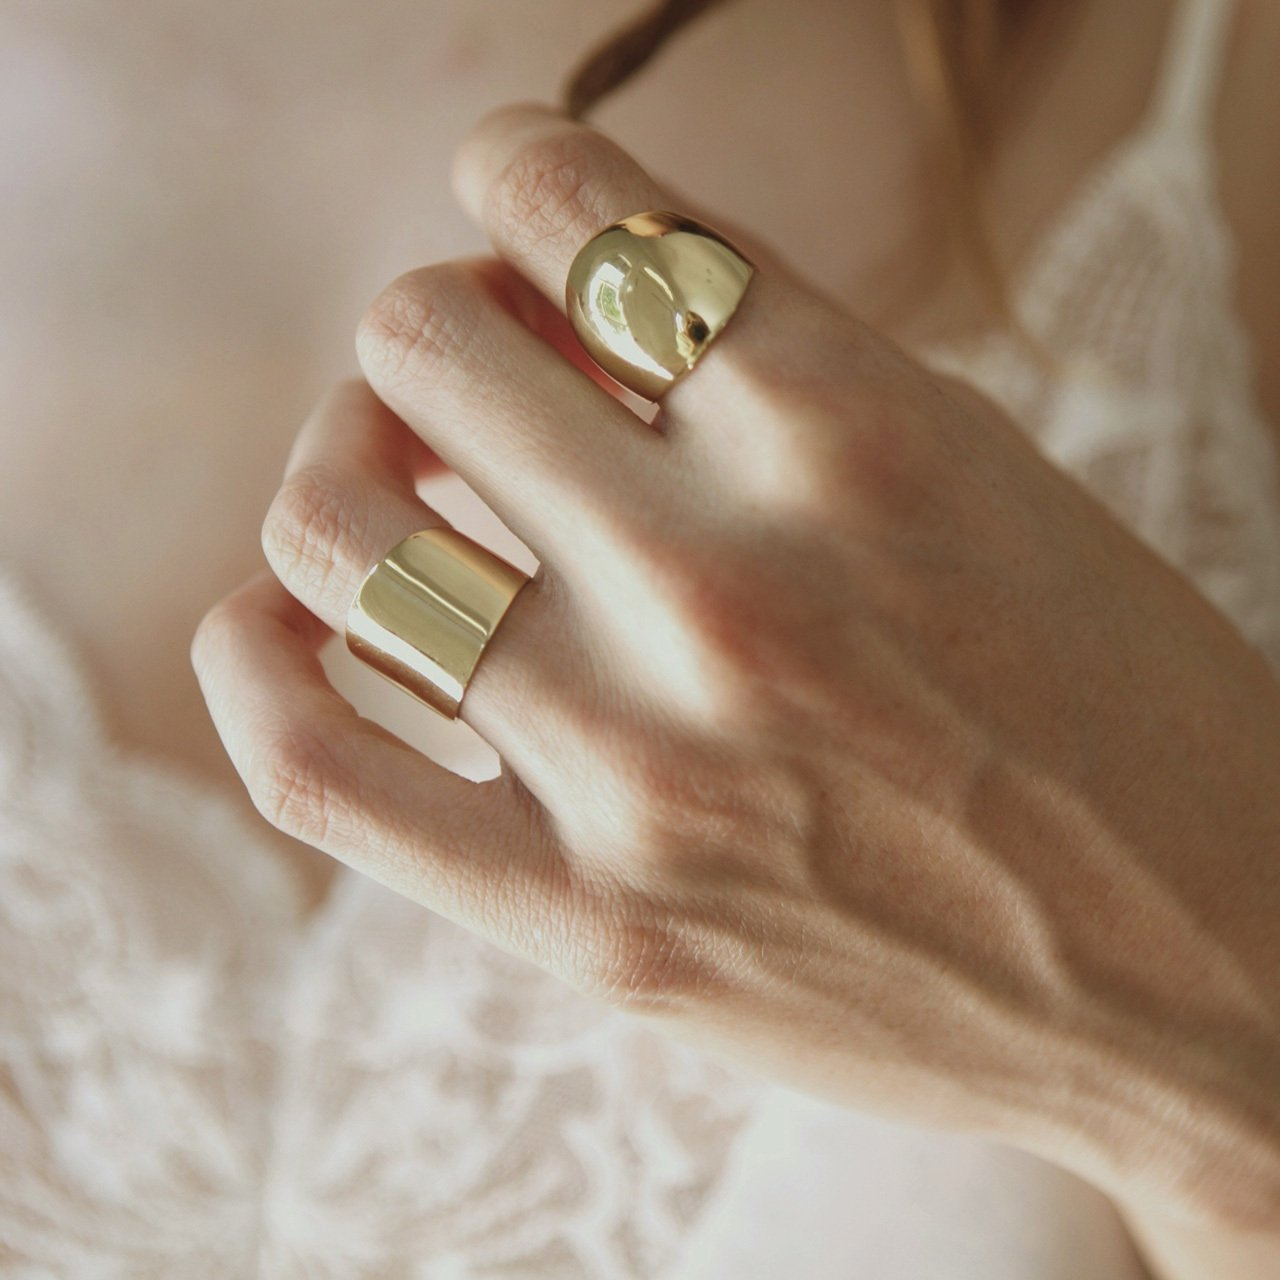 Cigar Band Ring - Gabriela Artigas